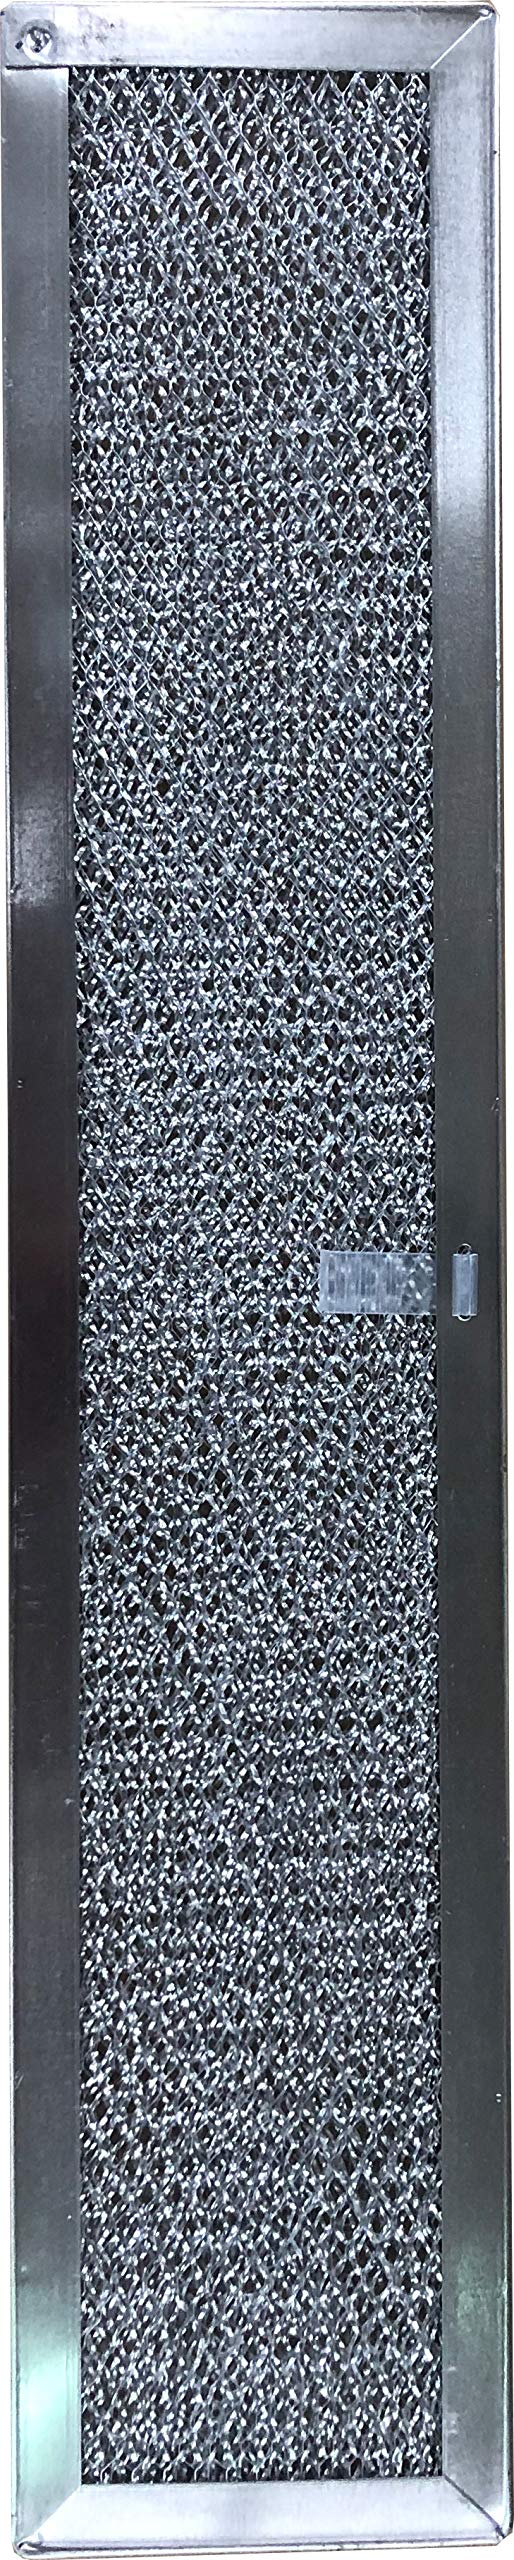 Replacement Aluminum Range Filter Compatible With Dacor 82558,G 8655,RHF0413   4 x 30 1/2 x 3/32 (PT